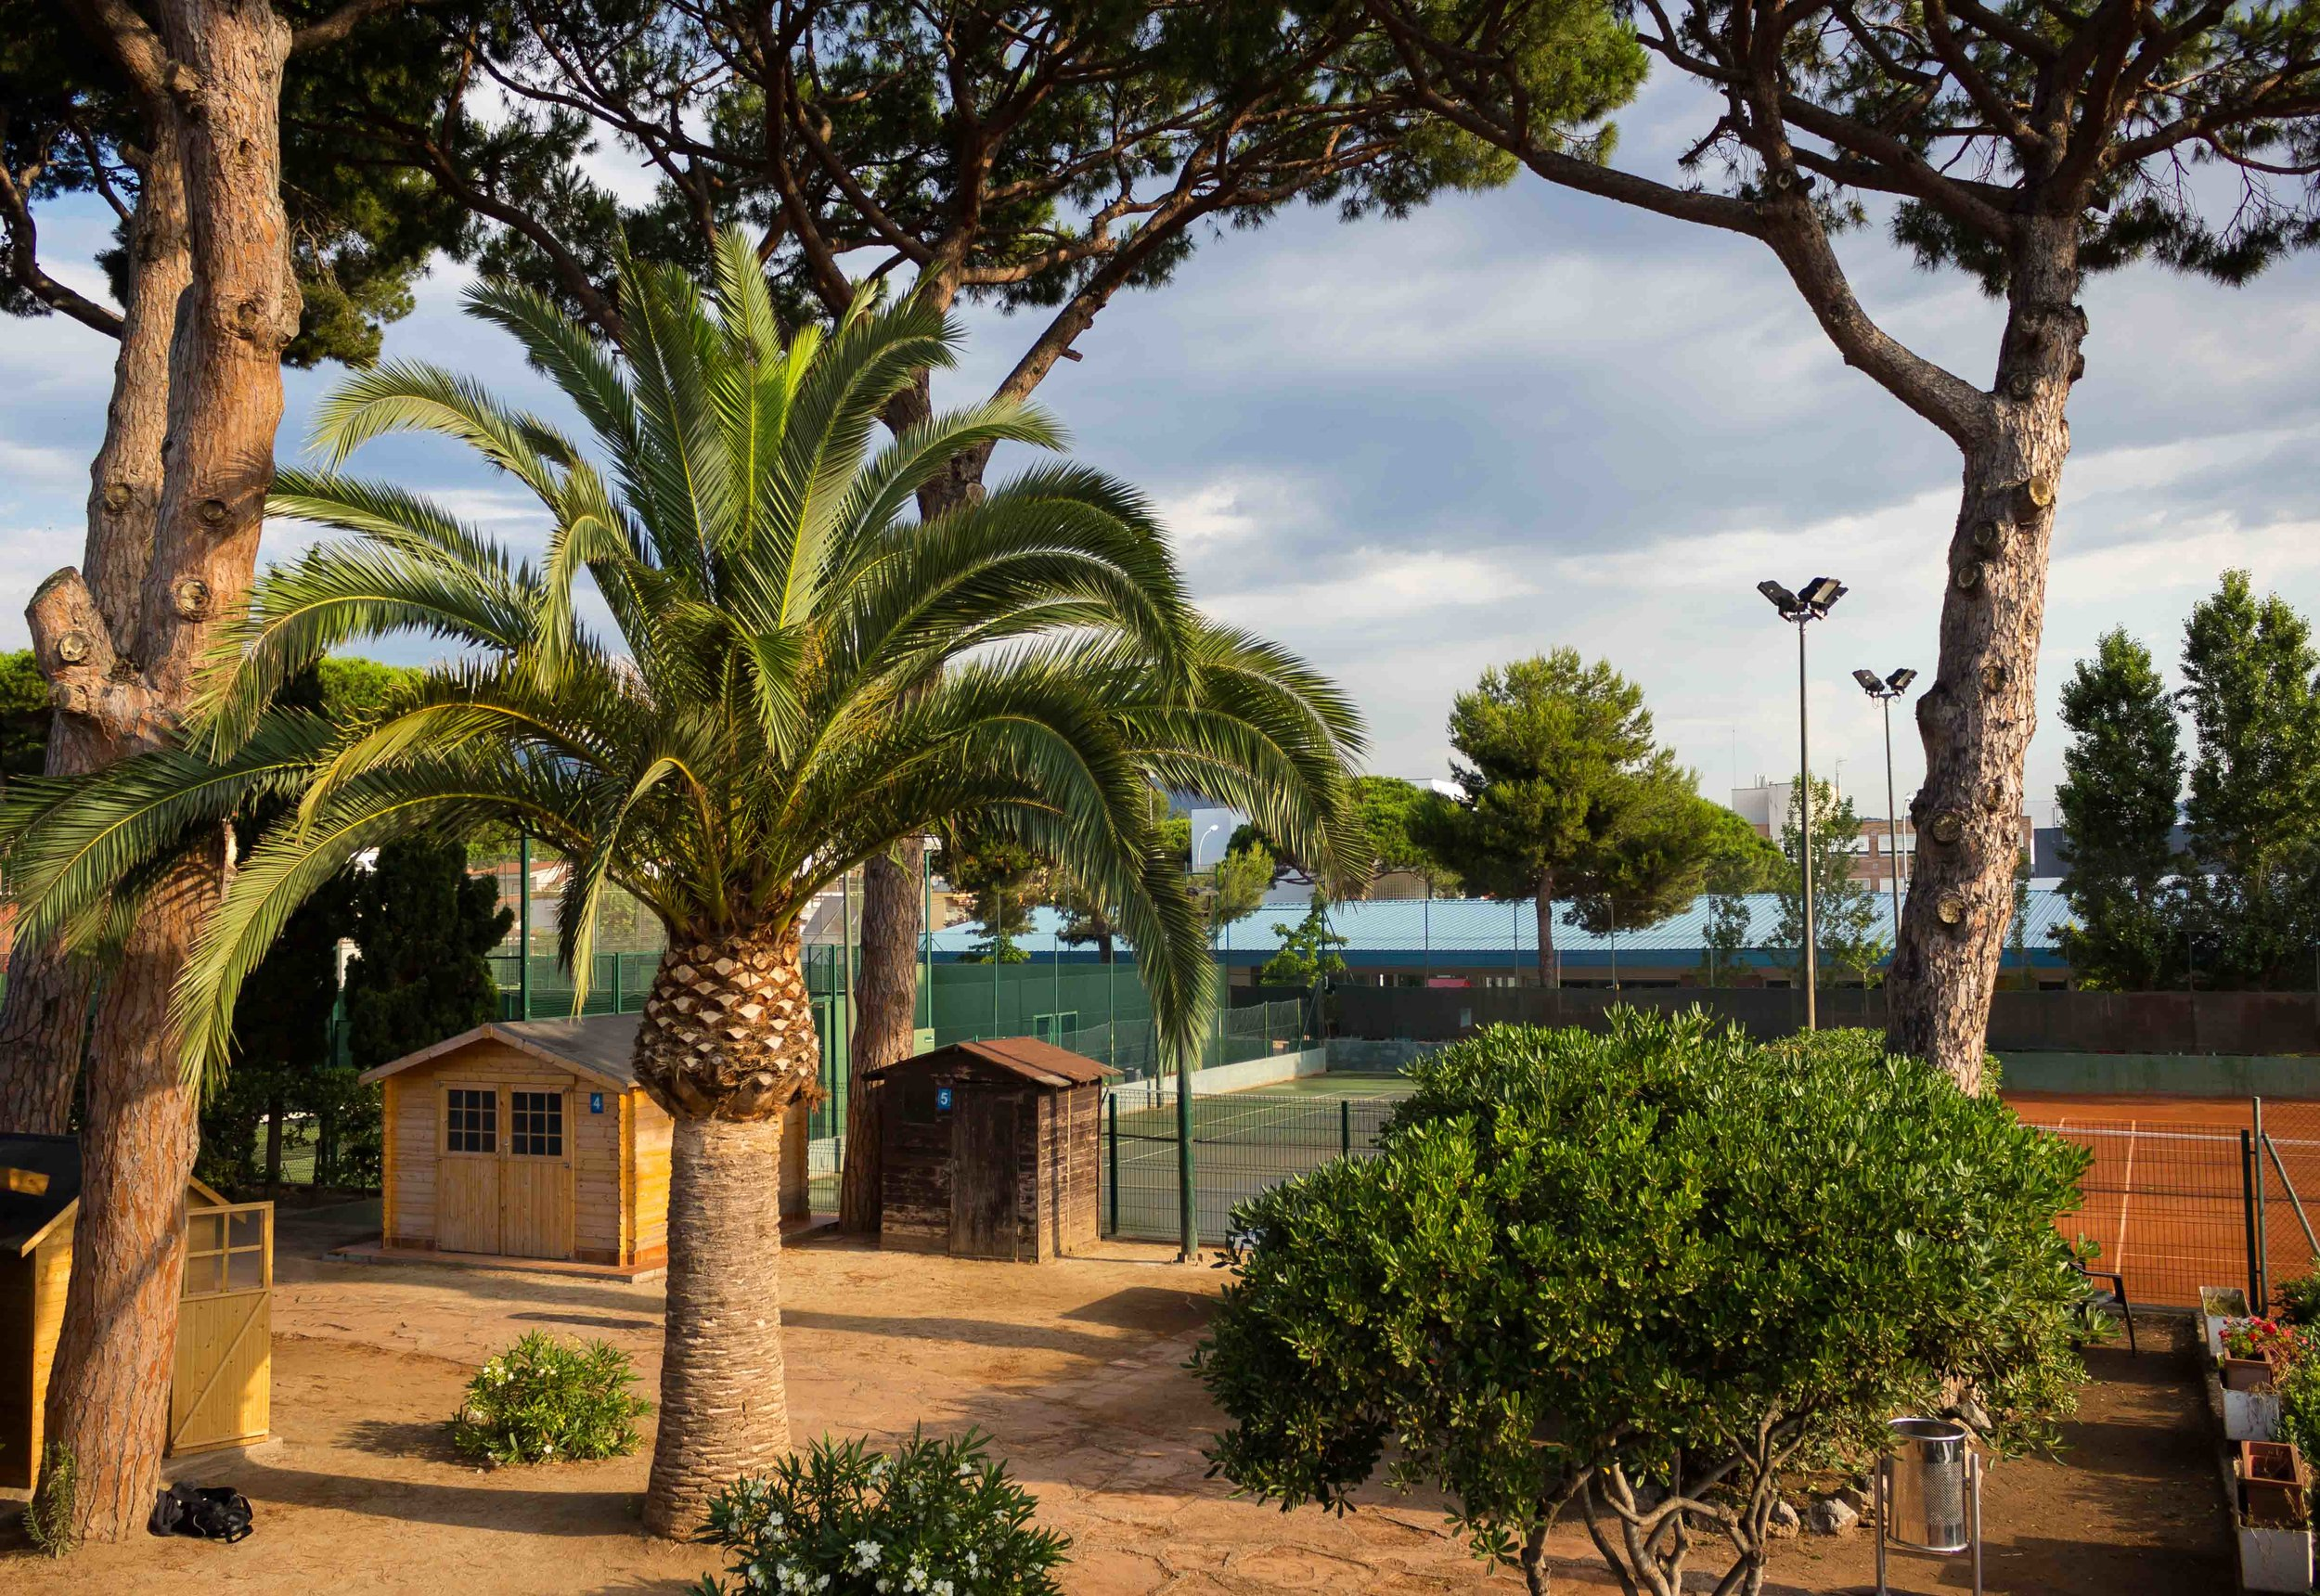 FACILITIES & LOCATION     Our tennis academy is located in Spain, in Castelldefels, a vibrant coastal village, just 20 minutes outside Barcelona and 10 minutes from the international airport. In addition, the courts are just a 5-minute walk away from a beautiful sandy beach.  Our new facilities have all the necessary structures to set up complete training programmes for our players.   LEARN MORE